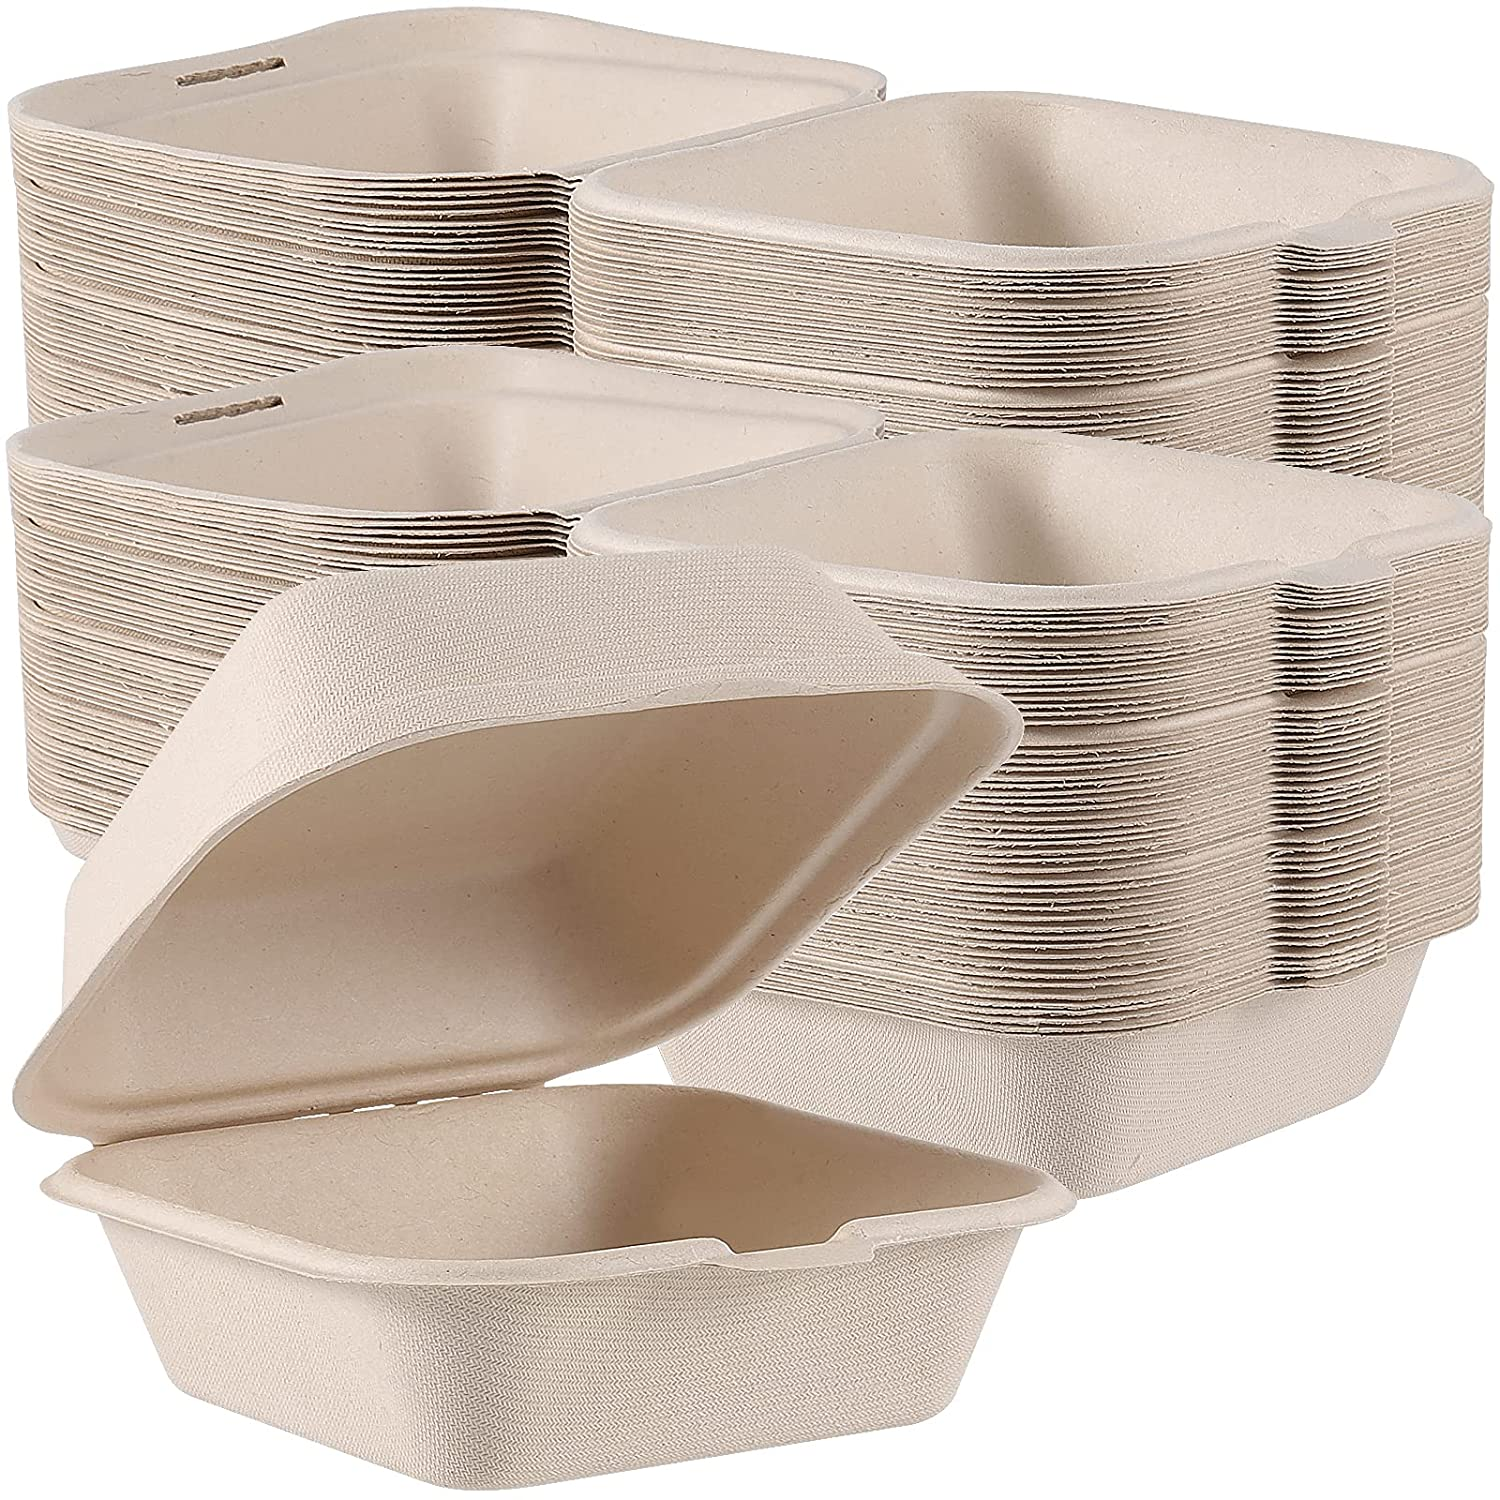 HAKZEON 100 PCS 6 x 6 Inches Clamshell to Go Boxes, Compostable Clamshell Takeout Containers with Hinged Lids, Anti-Grease Microwavable Container Boxes for Restaurants, Food Trucks, Wedding